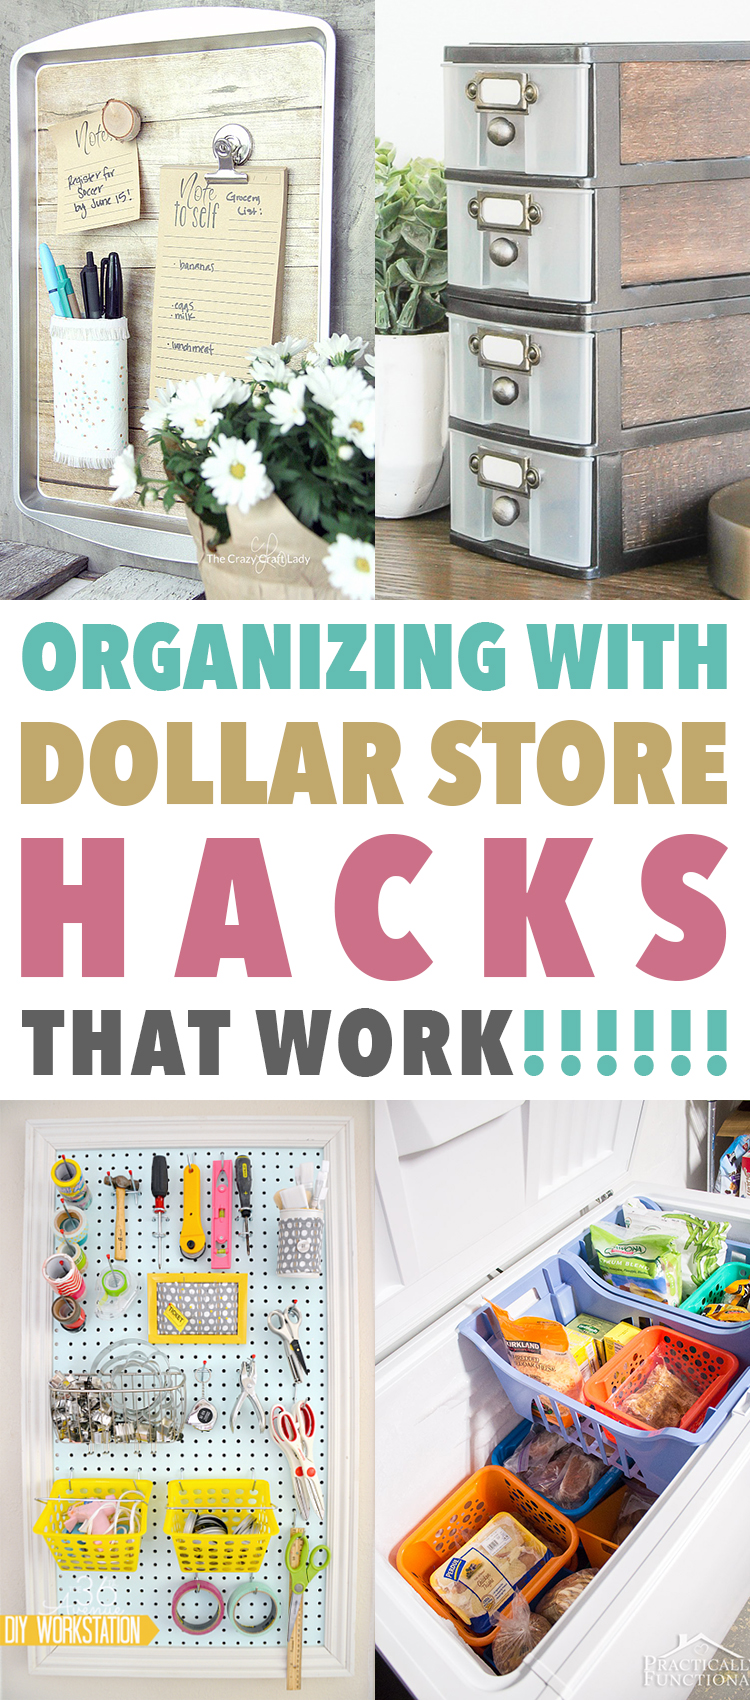 Organizing With Dollar Store Hacks That WORK!